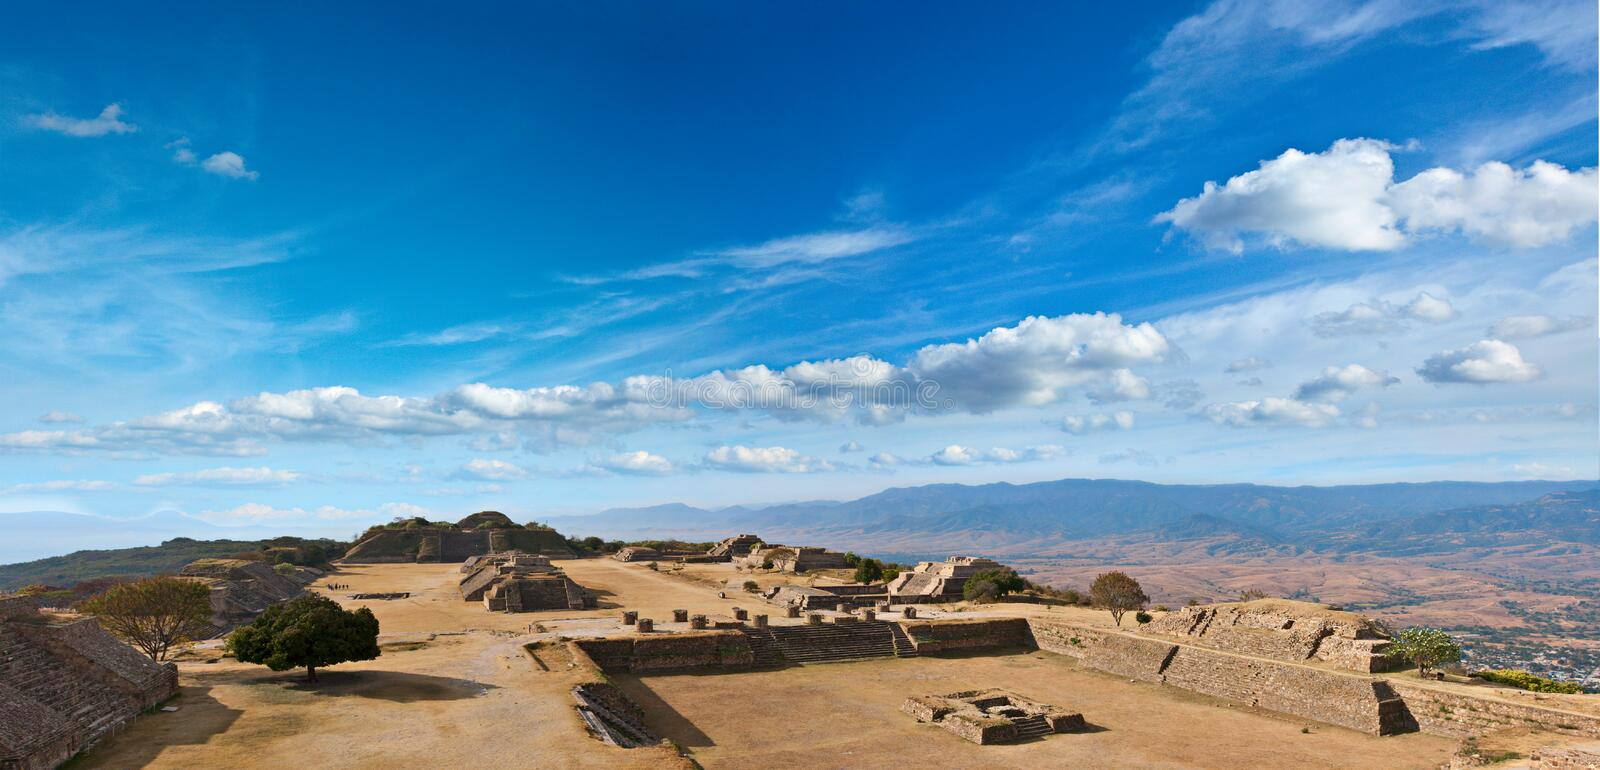 Panorama der heiligen Sites Monte Alban, Mexiko lizenzfreie stockfotos